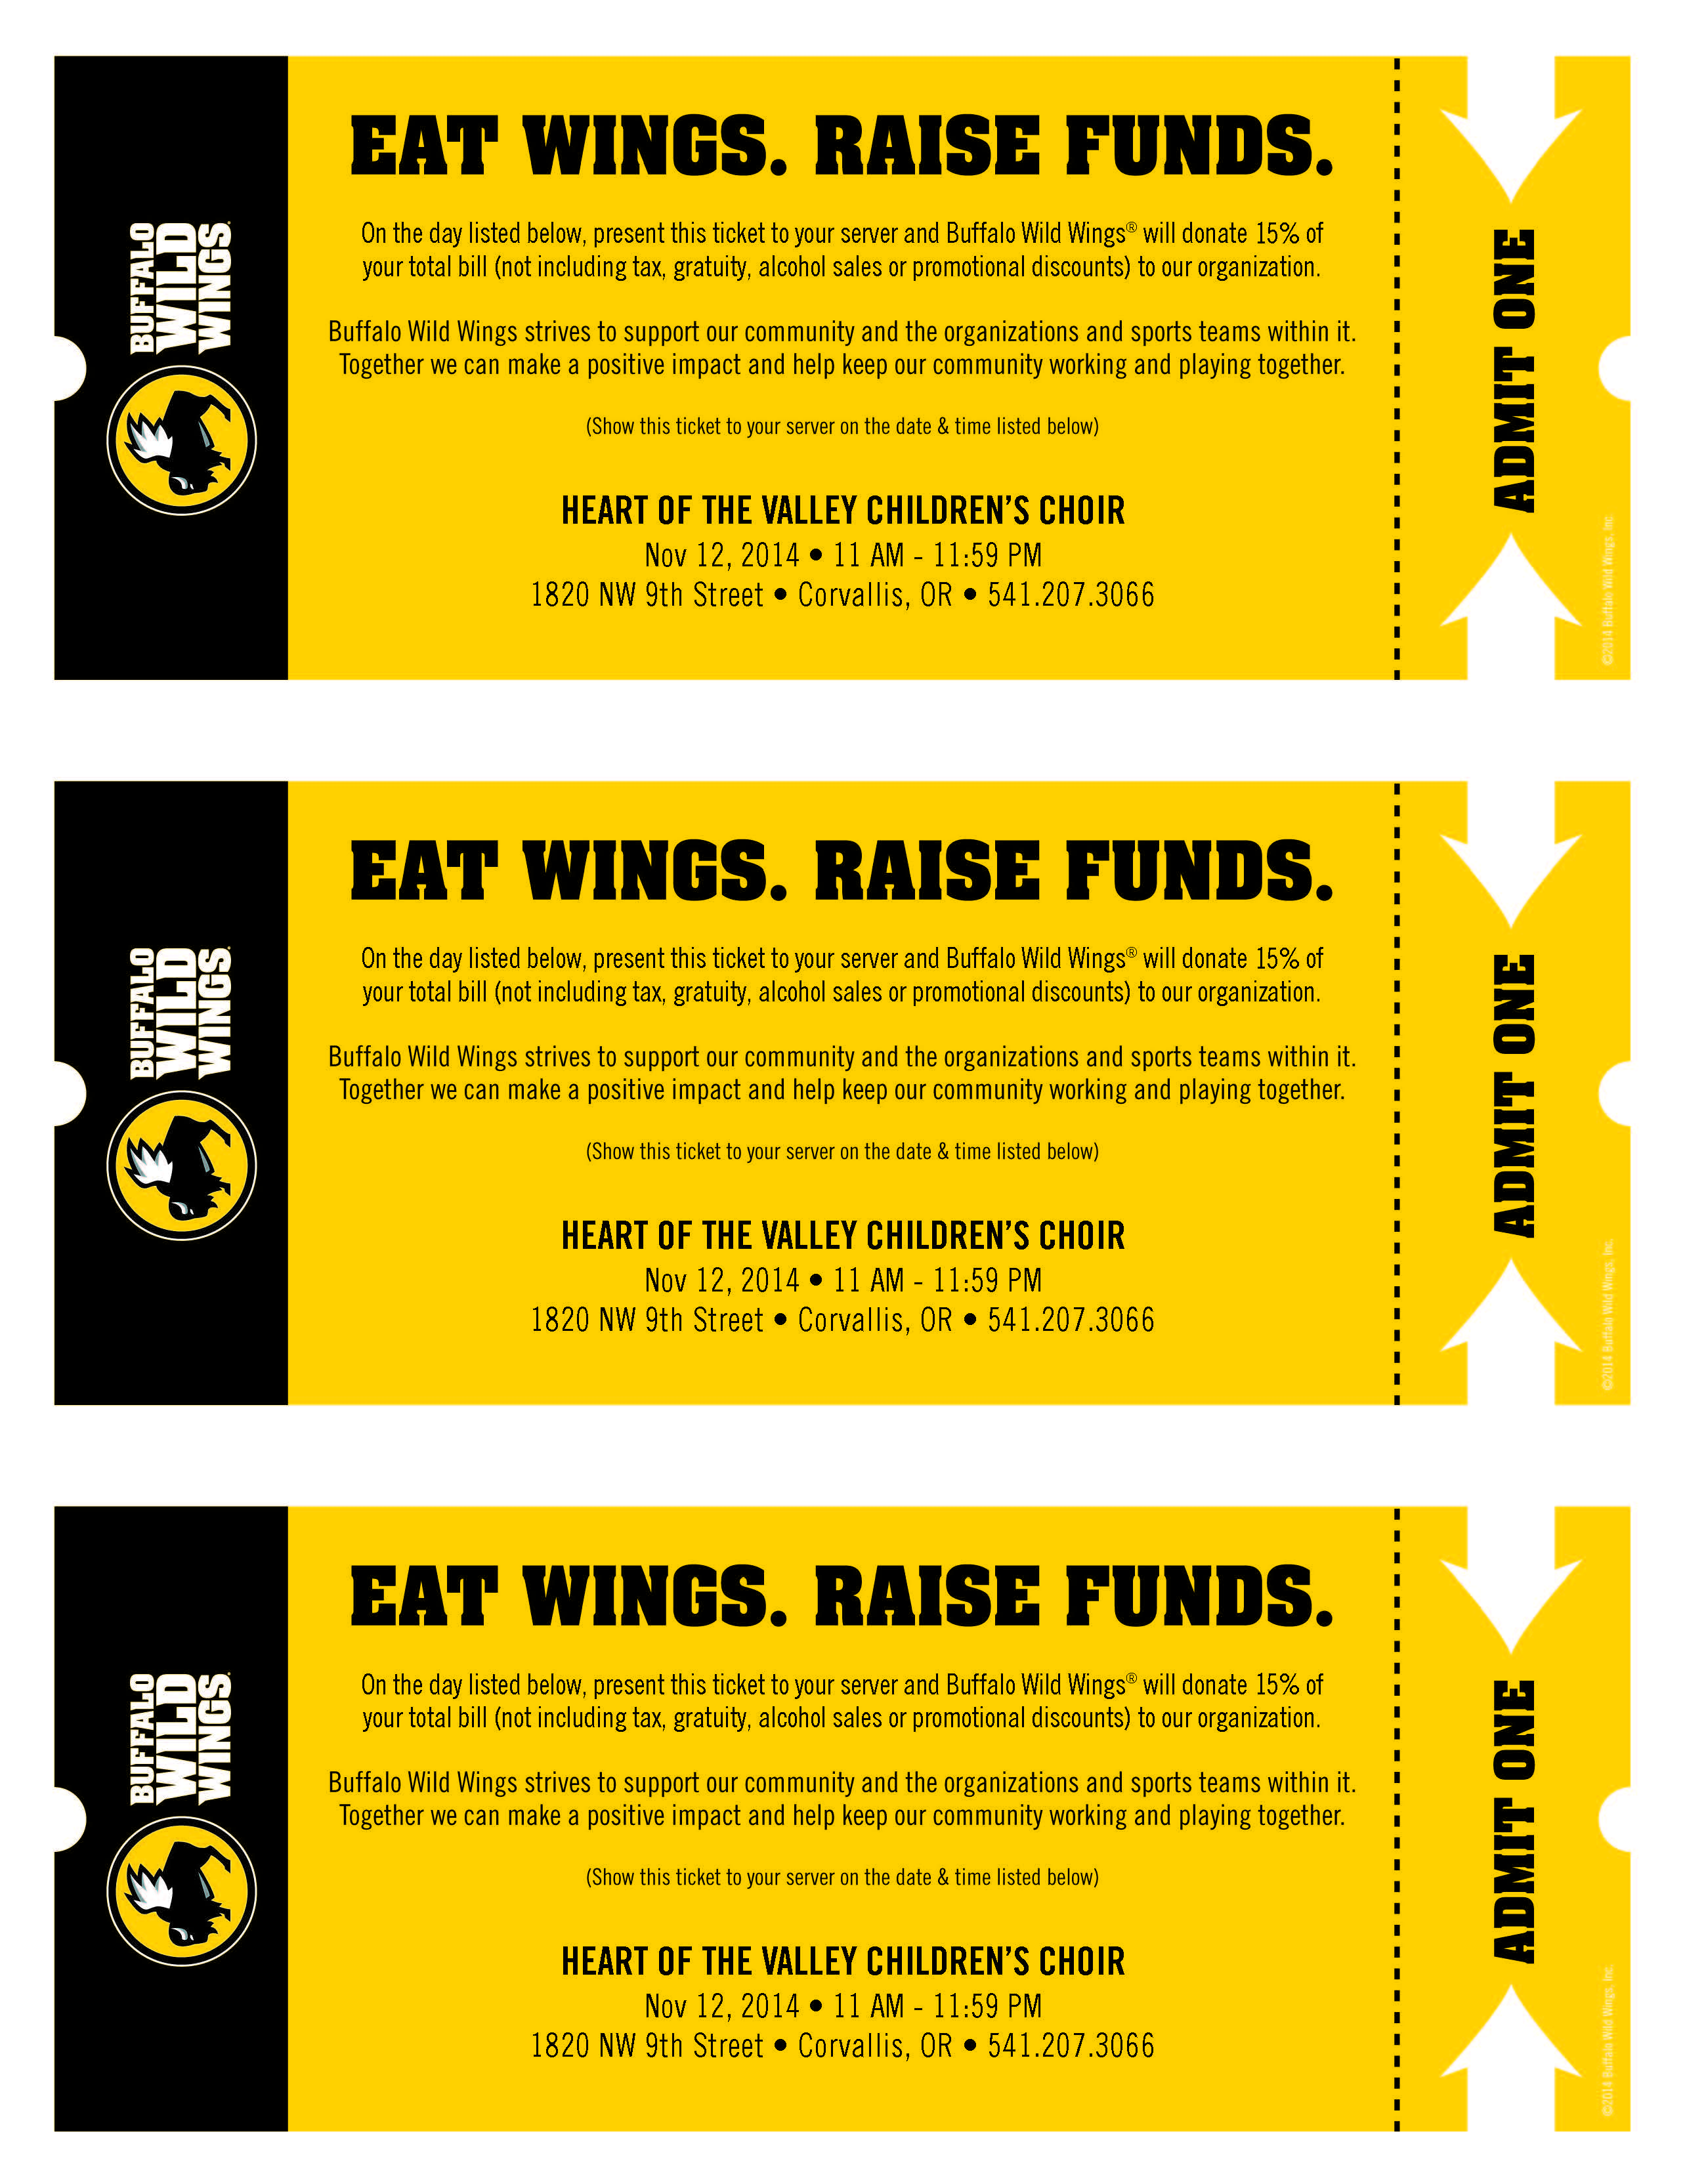 ... Event at Buffalo Wild Wings! | Heart of the Valley Children's Choir